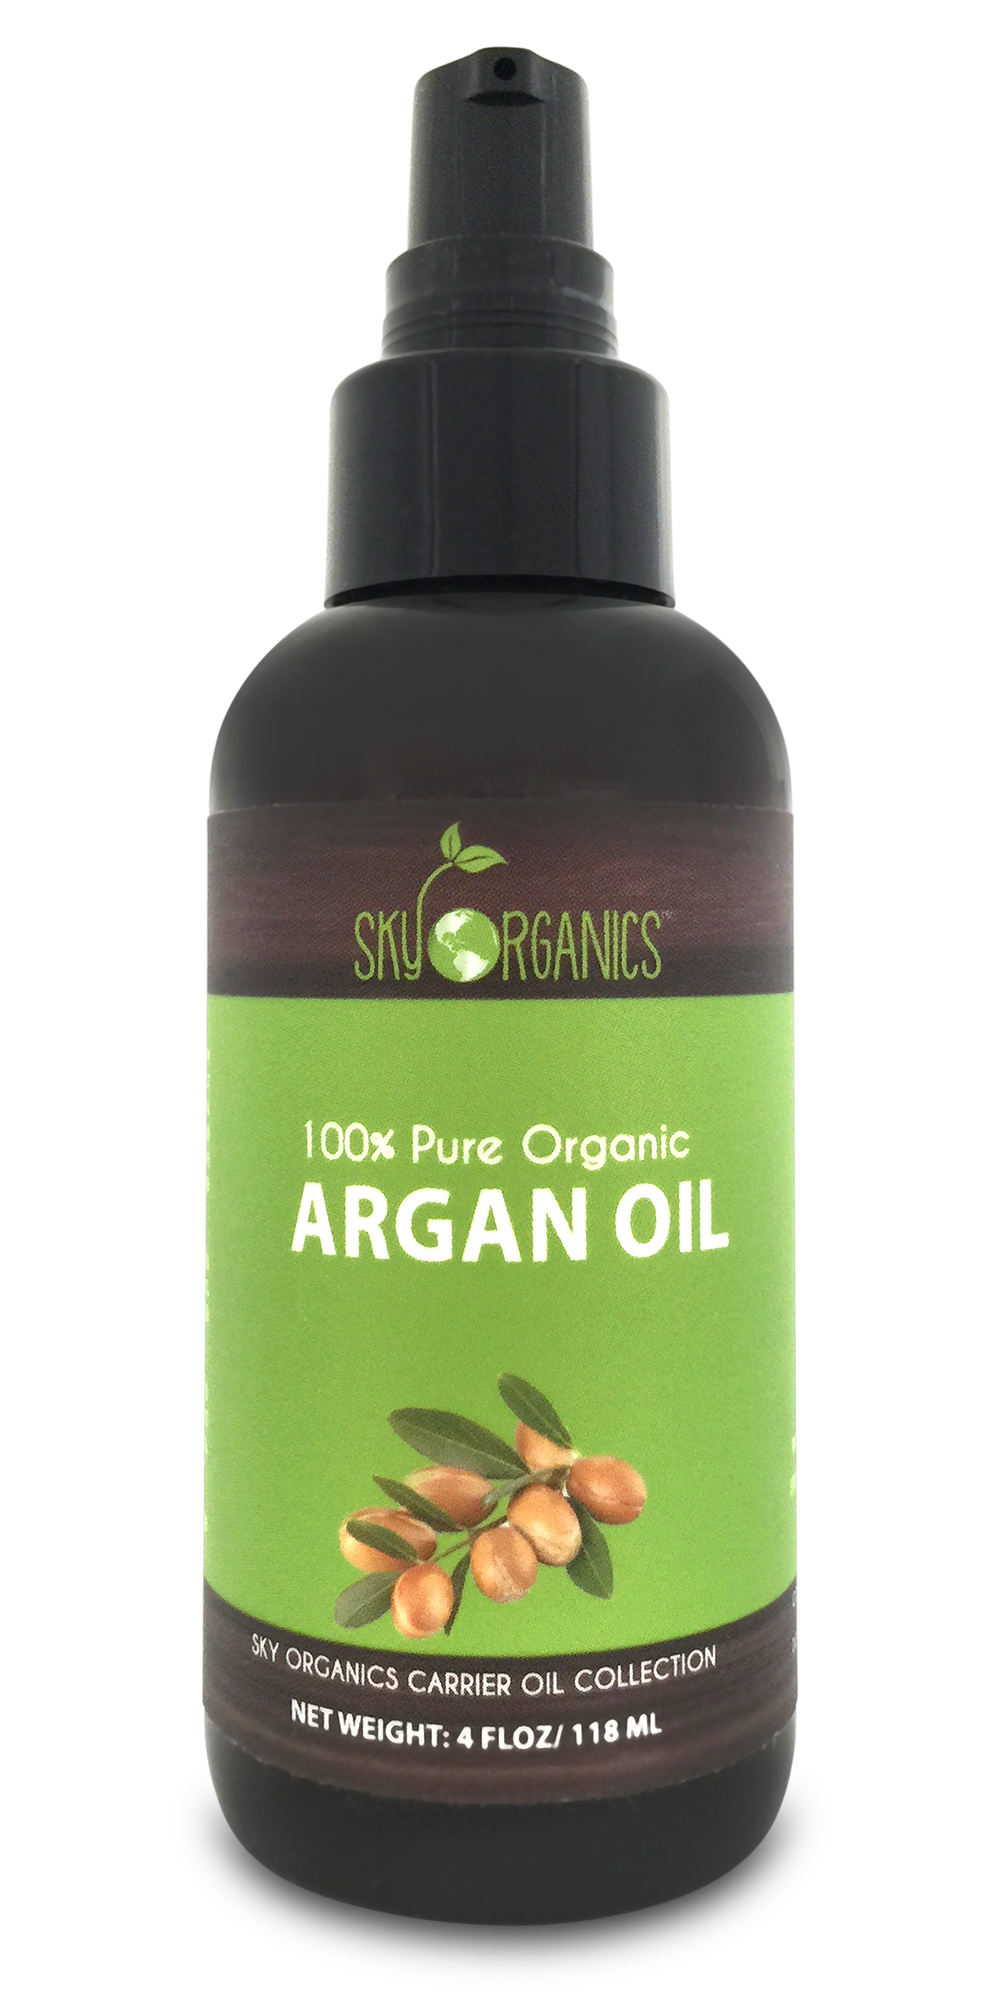 Sky Organics Best Moroccan Argan Oil: Unrefined, 100% Pure from Morocco (2 Pack) Retinol Anti-Aging Starter Kit, 7.7 Ounce (Pack of 3)